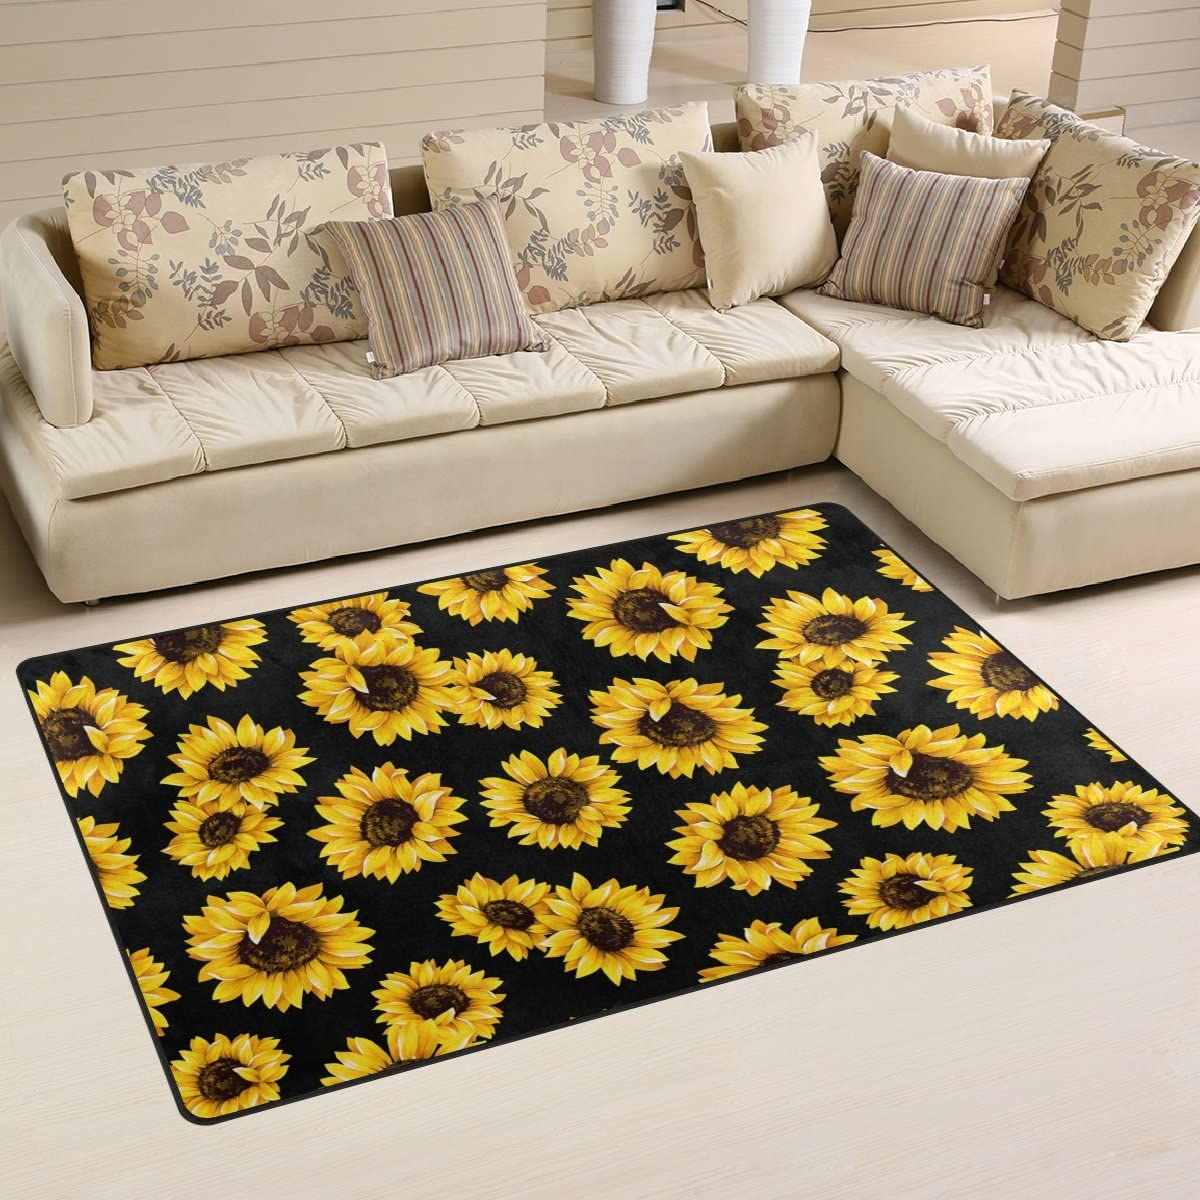 ALAZA Non-Slip Area Rugs Home Decor